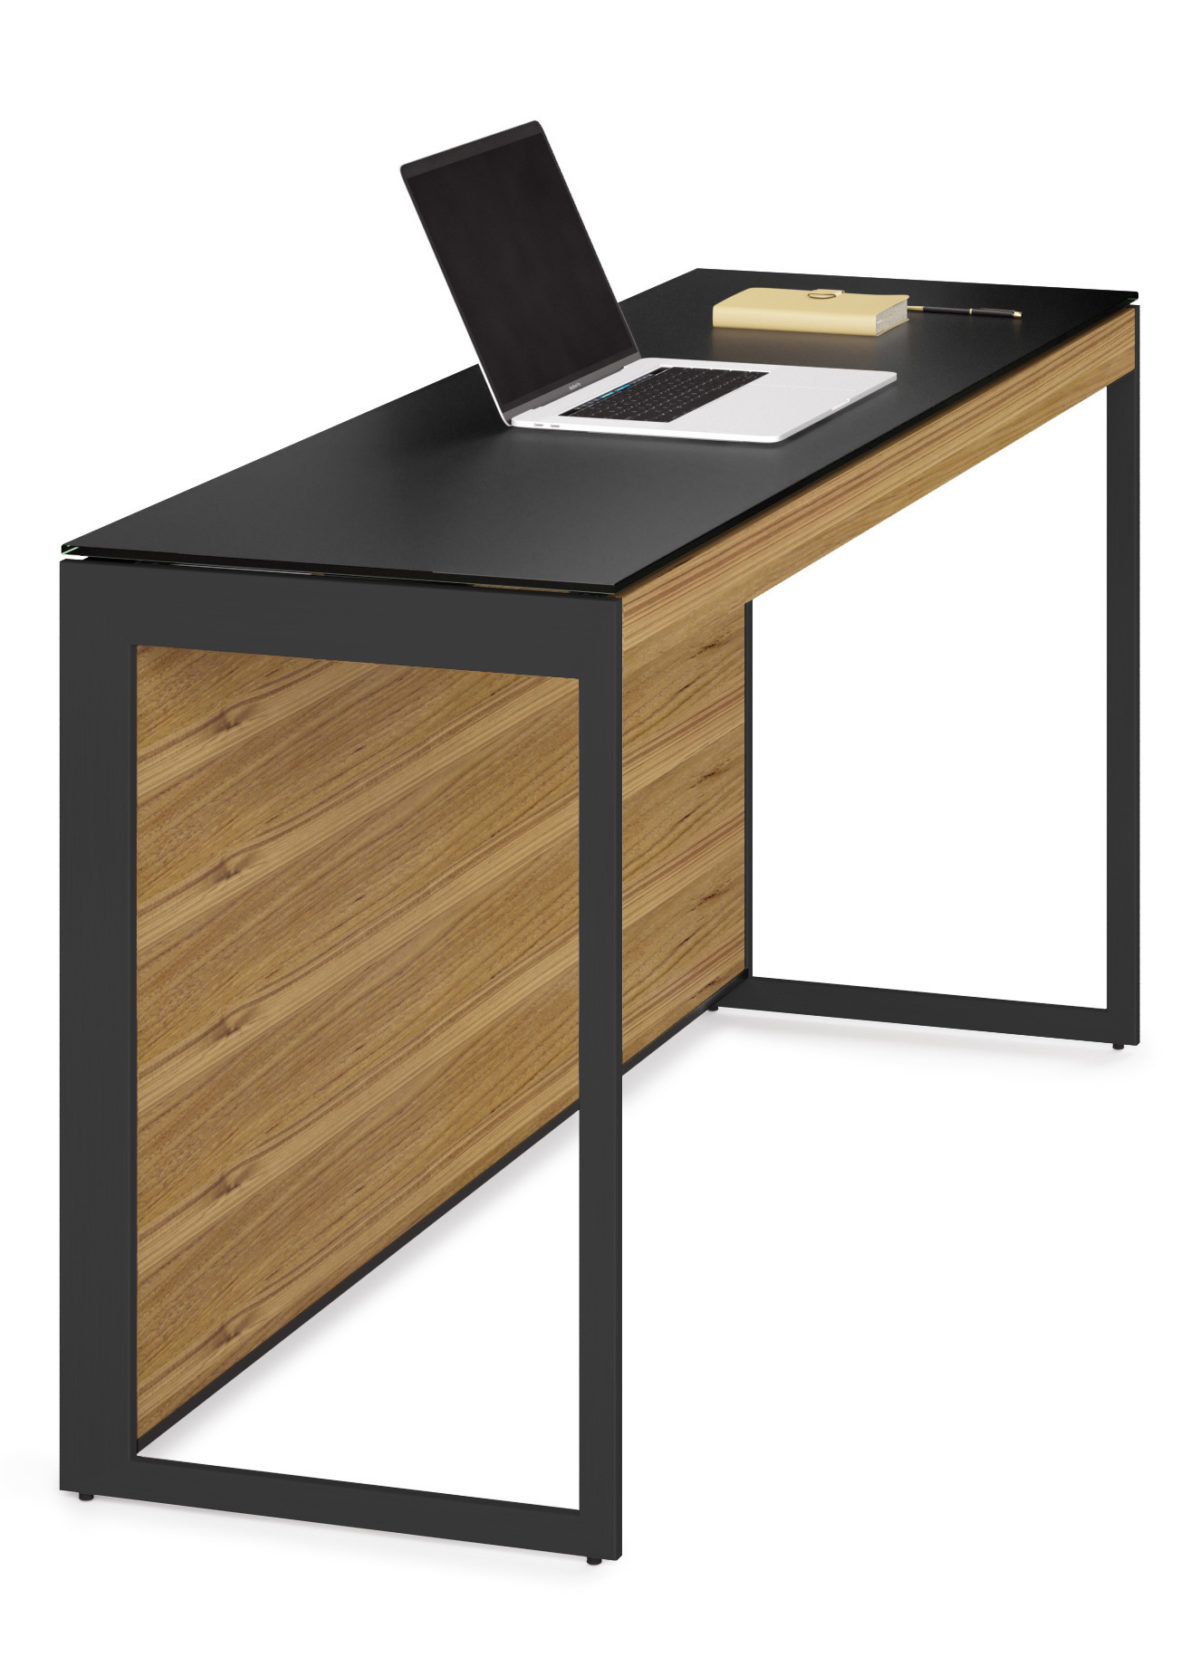 The narrow Sequel 6102 console by BDI furniture is the perfect home for a laptop computer or anyplace that available space is at a premium.